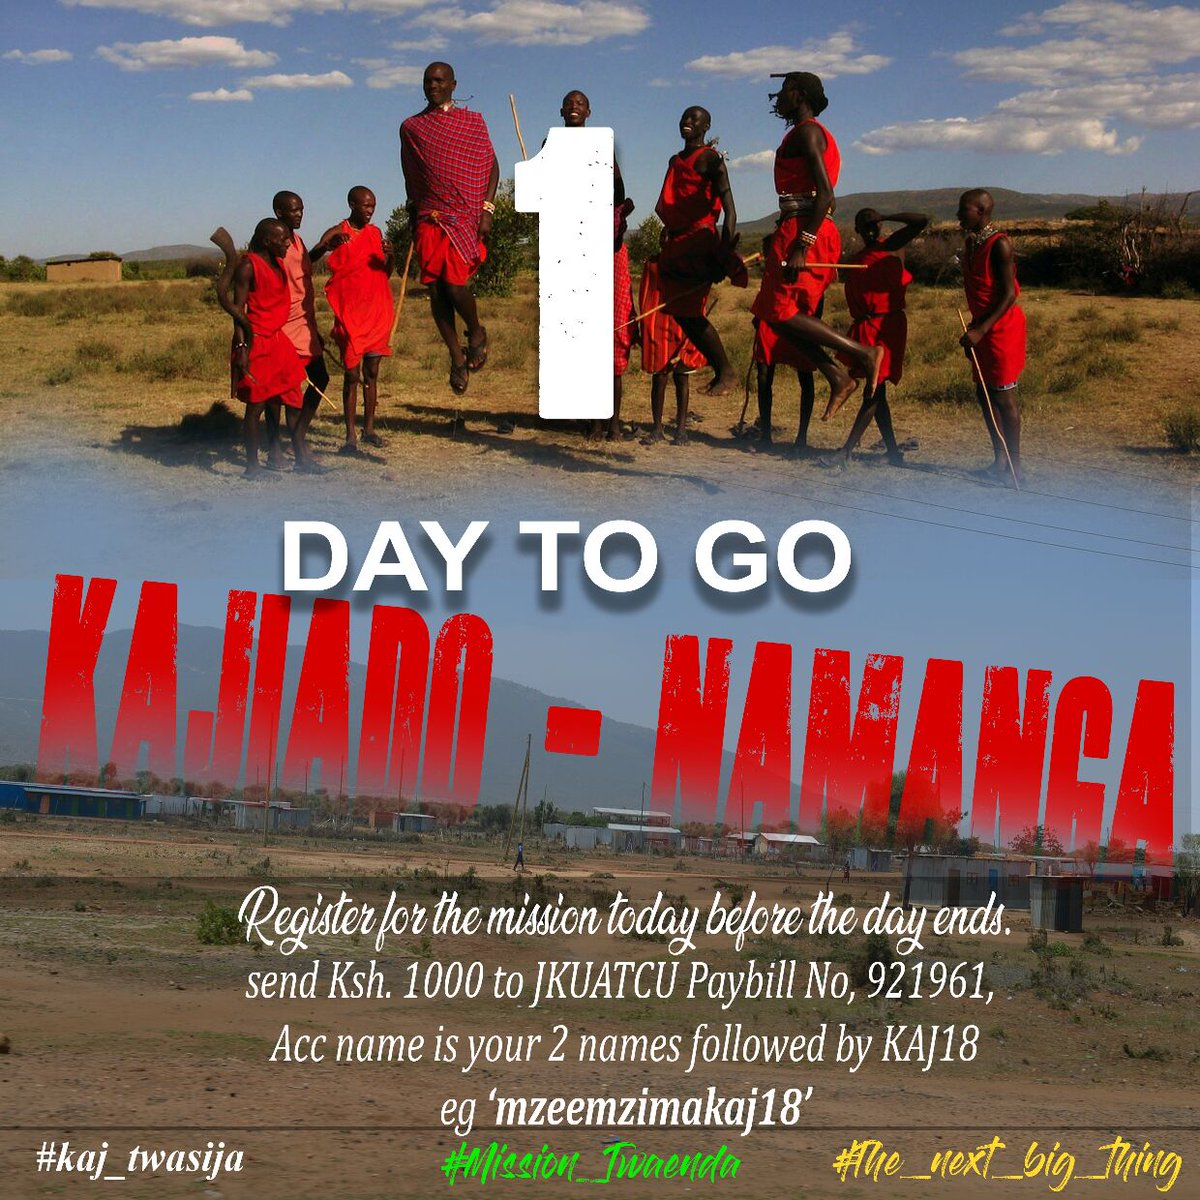 test Twitter Media - Kajiado Namanga Mission Registration. Please register using the CU playbill number that's 921961 and the account name as your two names and the word KAJ18. E.g. MzeeMzimaKAJ18.   You can also support the mission using the same paybill number as the Lord enables you  #KAJ_TWASIJA https://t.co/5gJiahj8hR